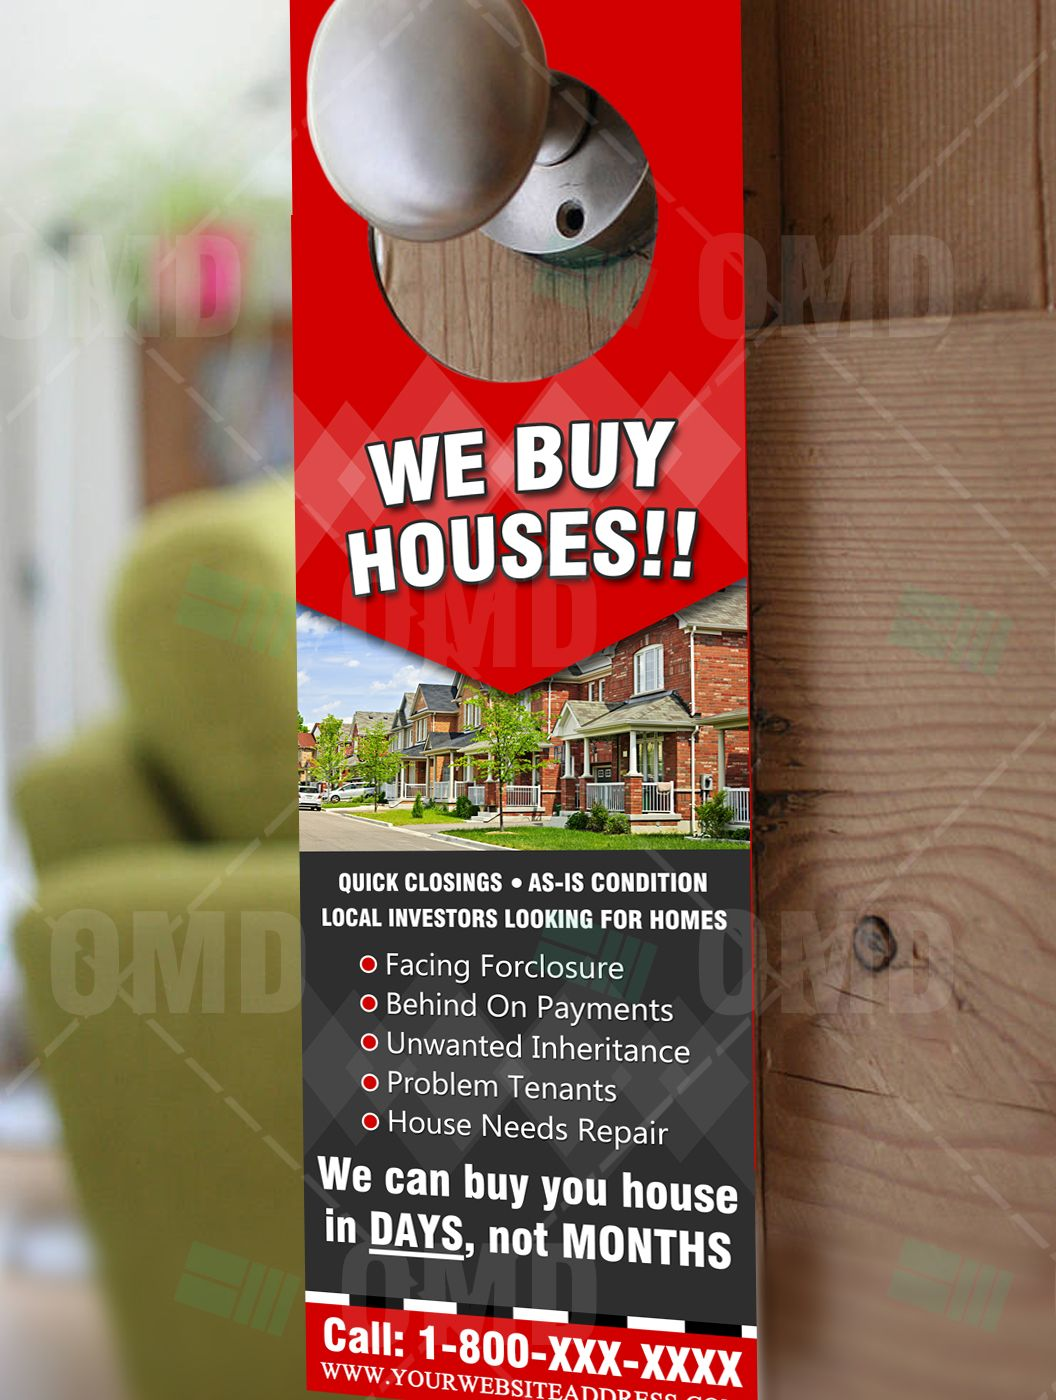 Effective We Buy Houses Door Hangers #realestatemarketing | Real ...